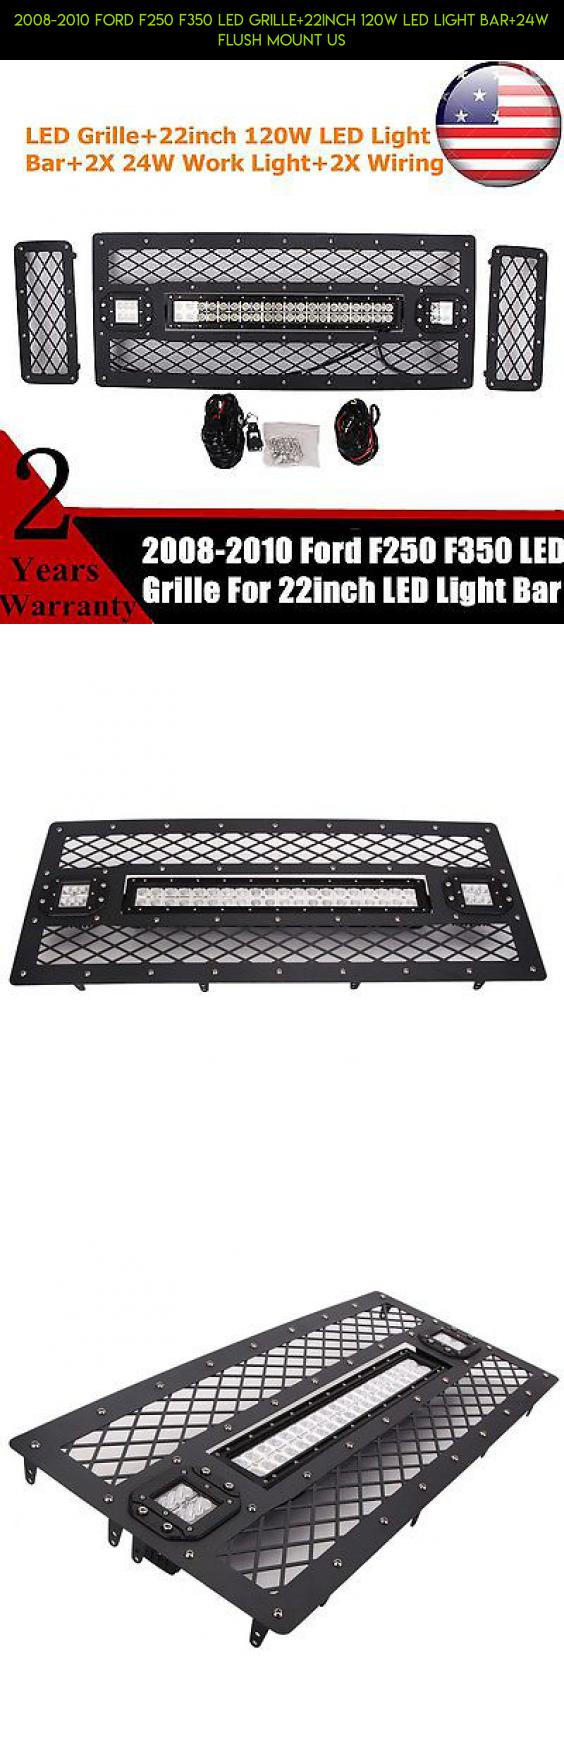 2008 2010 Ford F250 F350 Led Grille 22inch 120w Light Bar 24w Wiring Harness